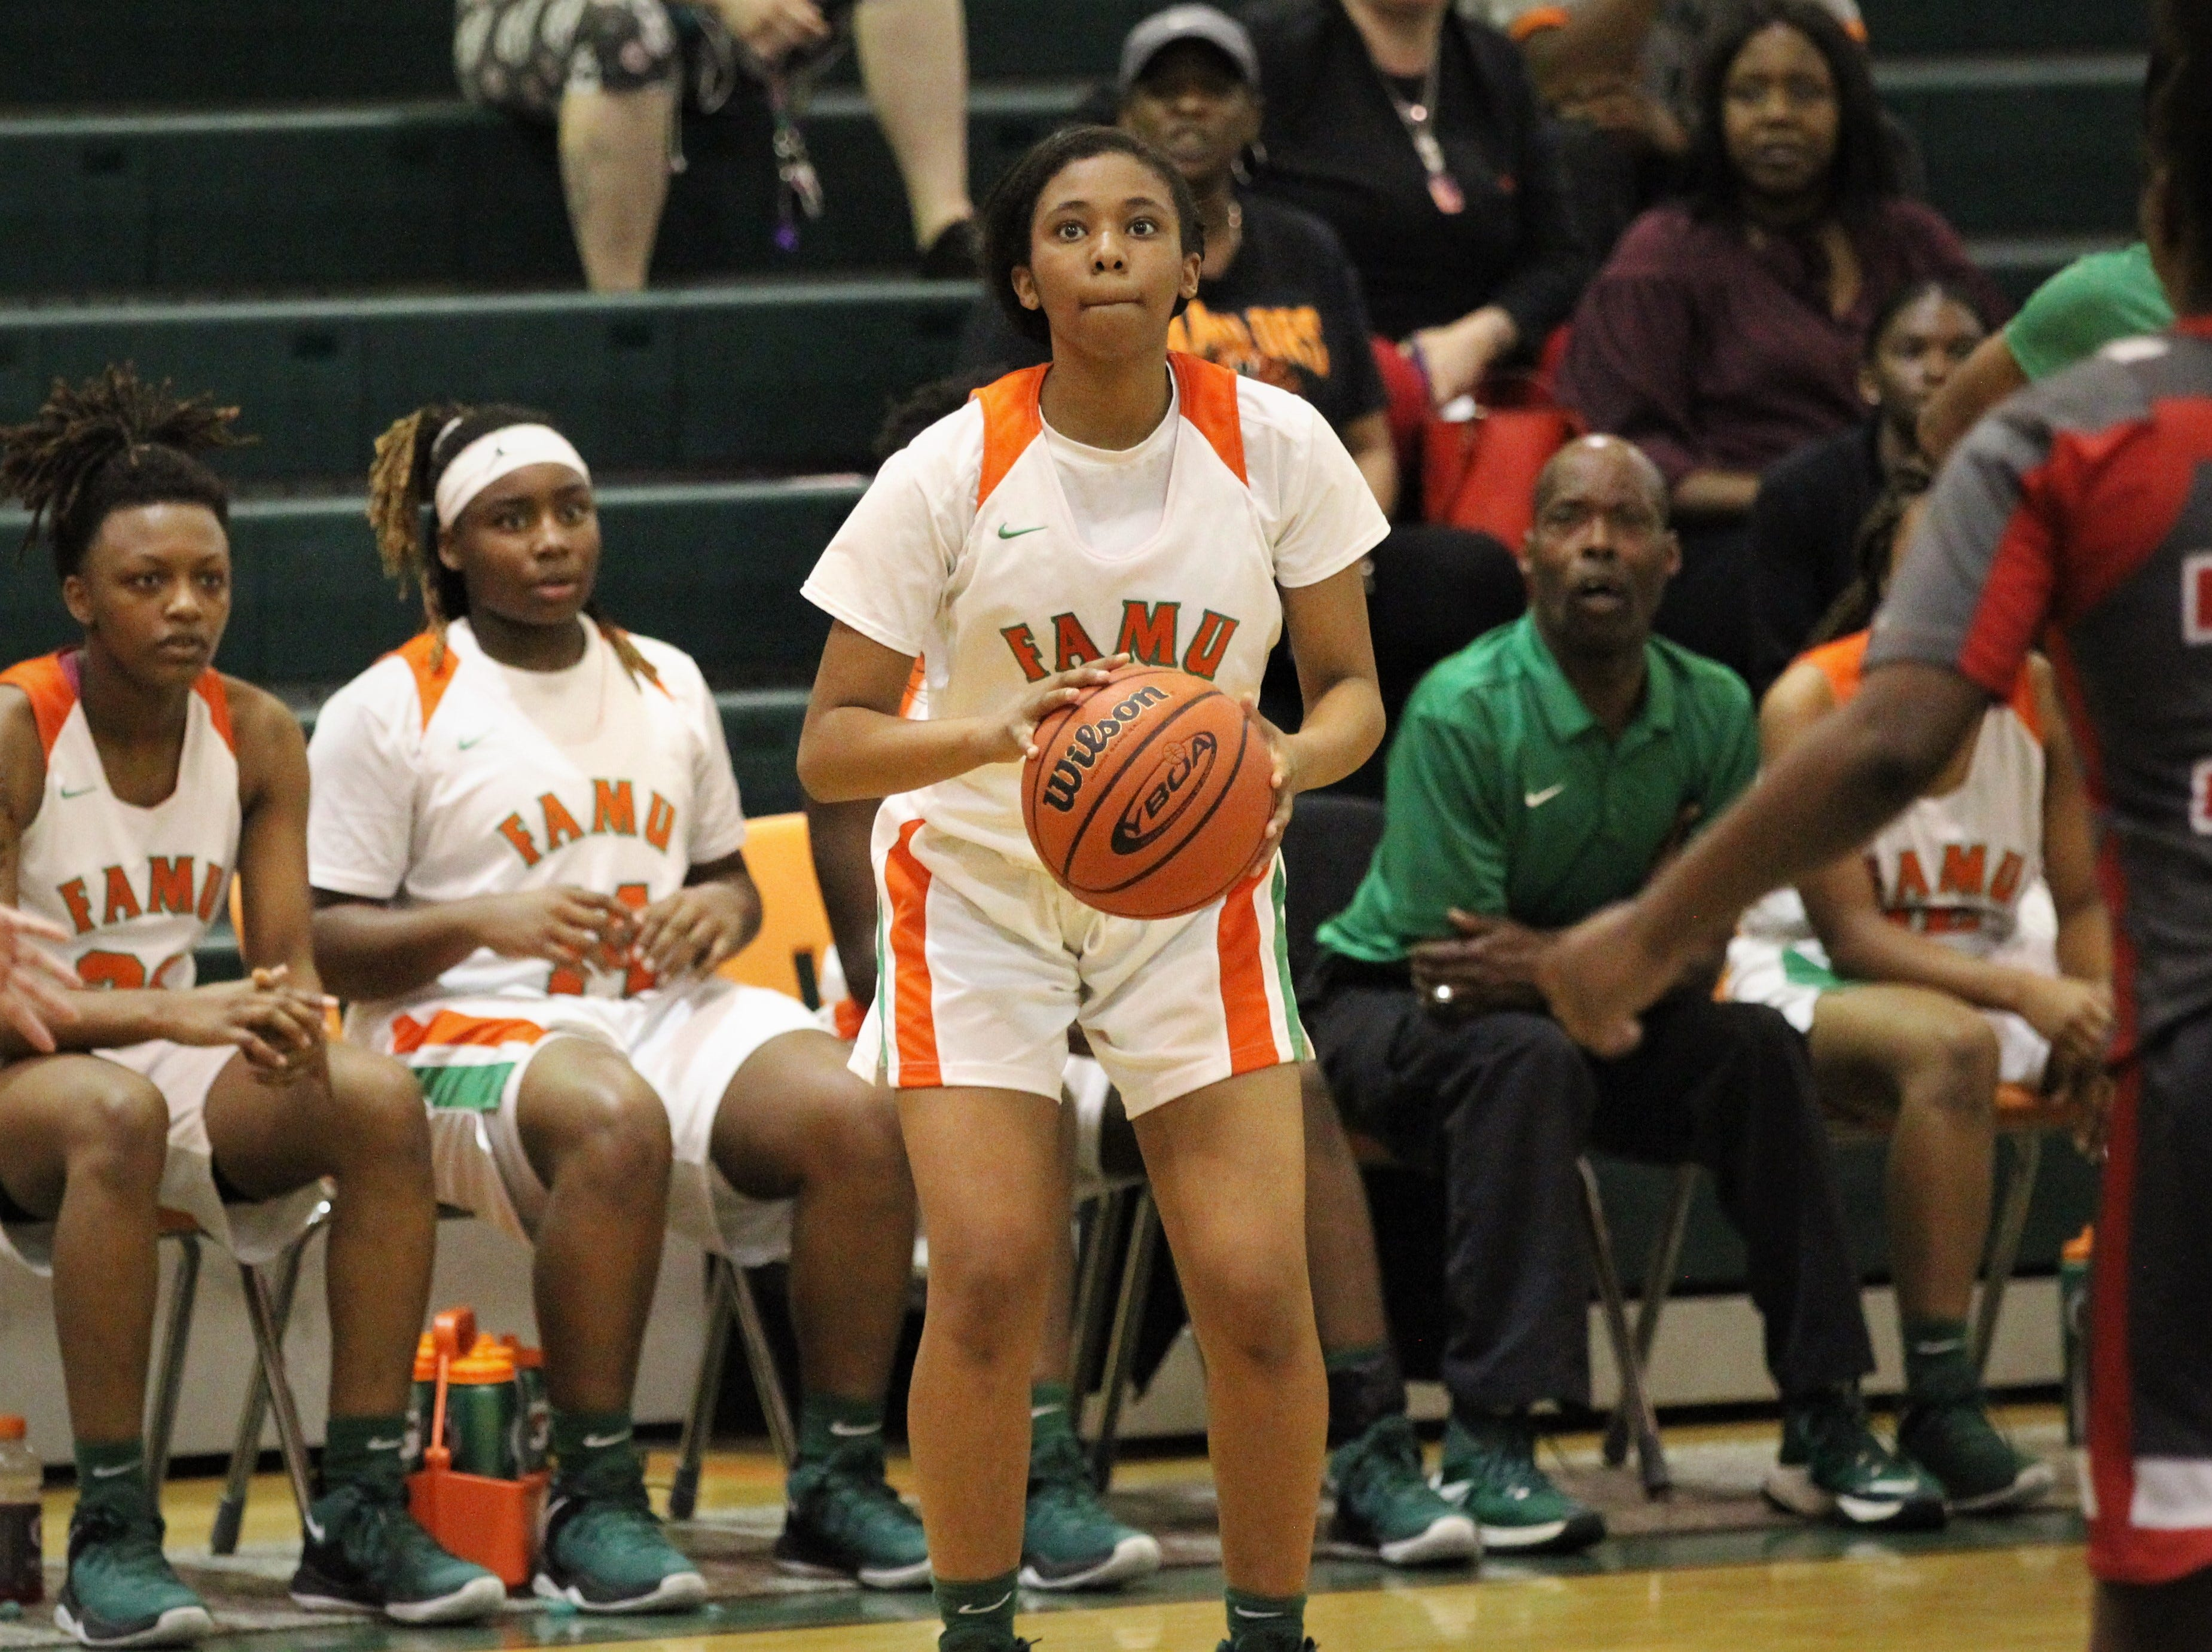 FAMU DRS junior Ashley Reddick sets up for a 3-pointer as FAMU DRS' girls basketball team beat NFC 59-41 for a District 1-3A title on Jan. 7, 2019.